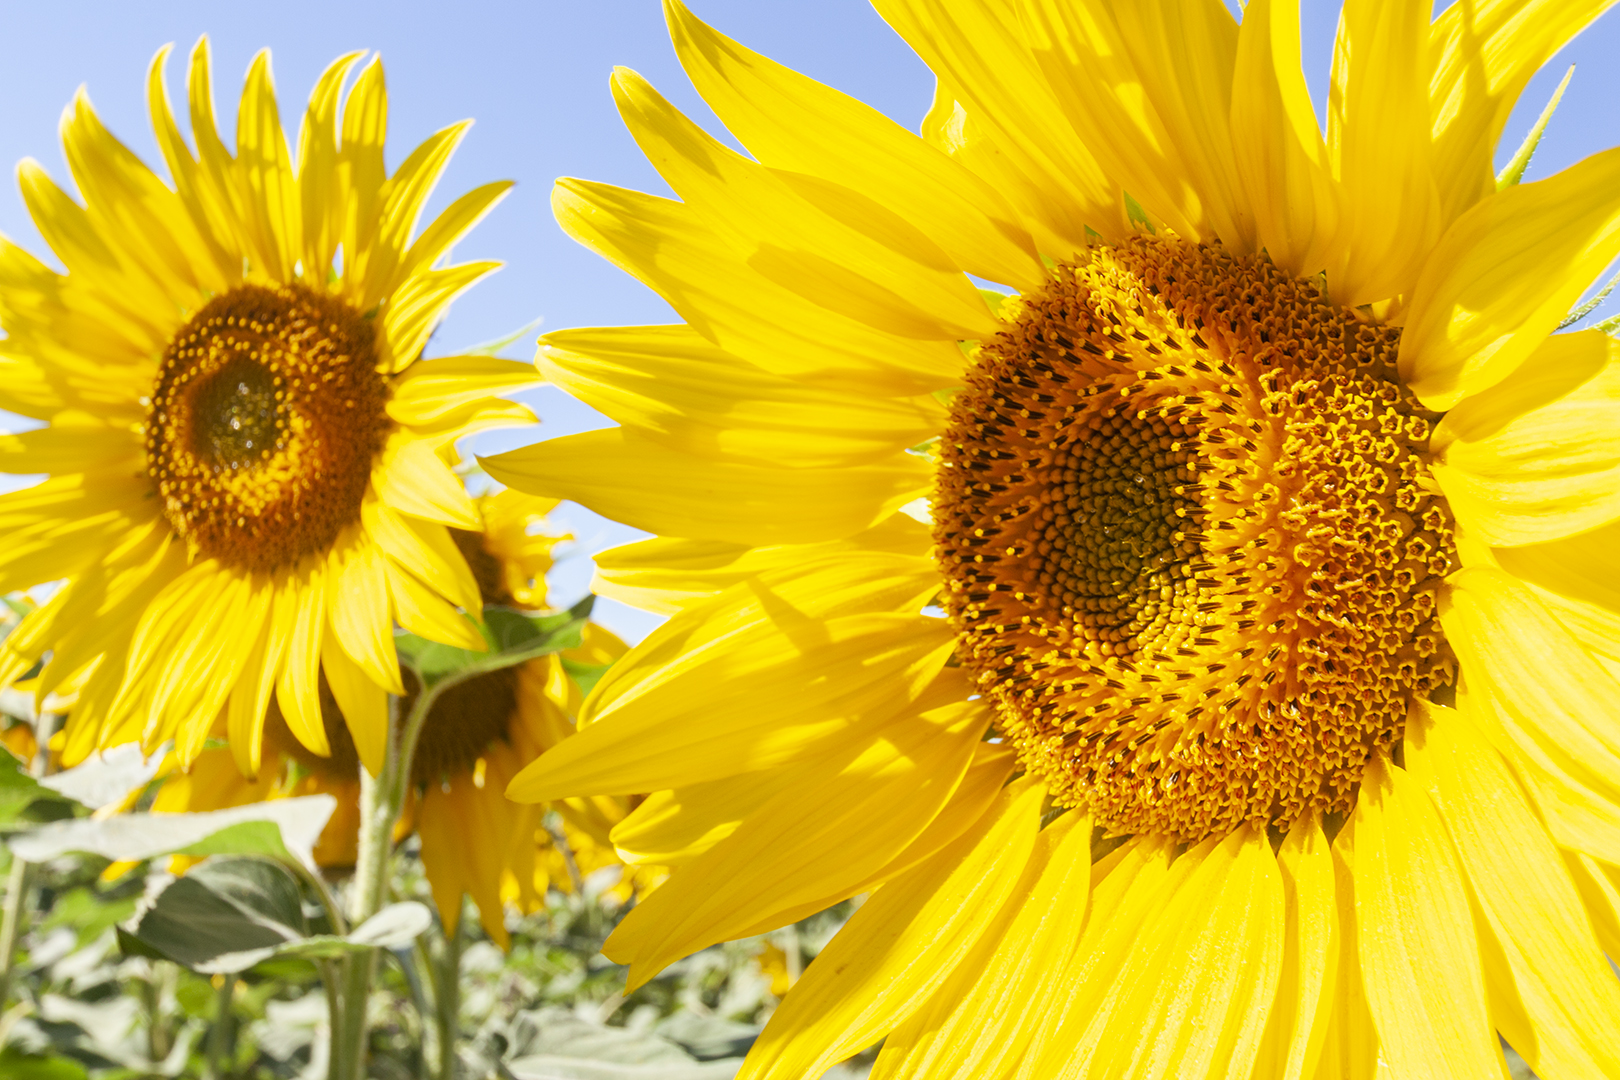 sunflowers_7.jpg